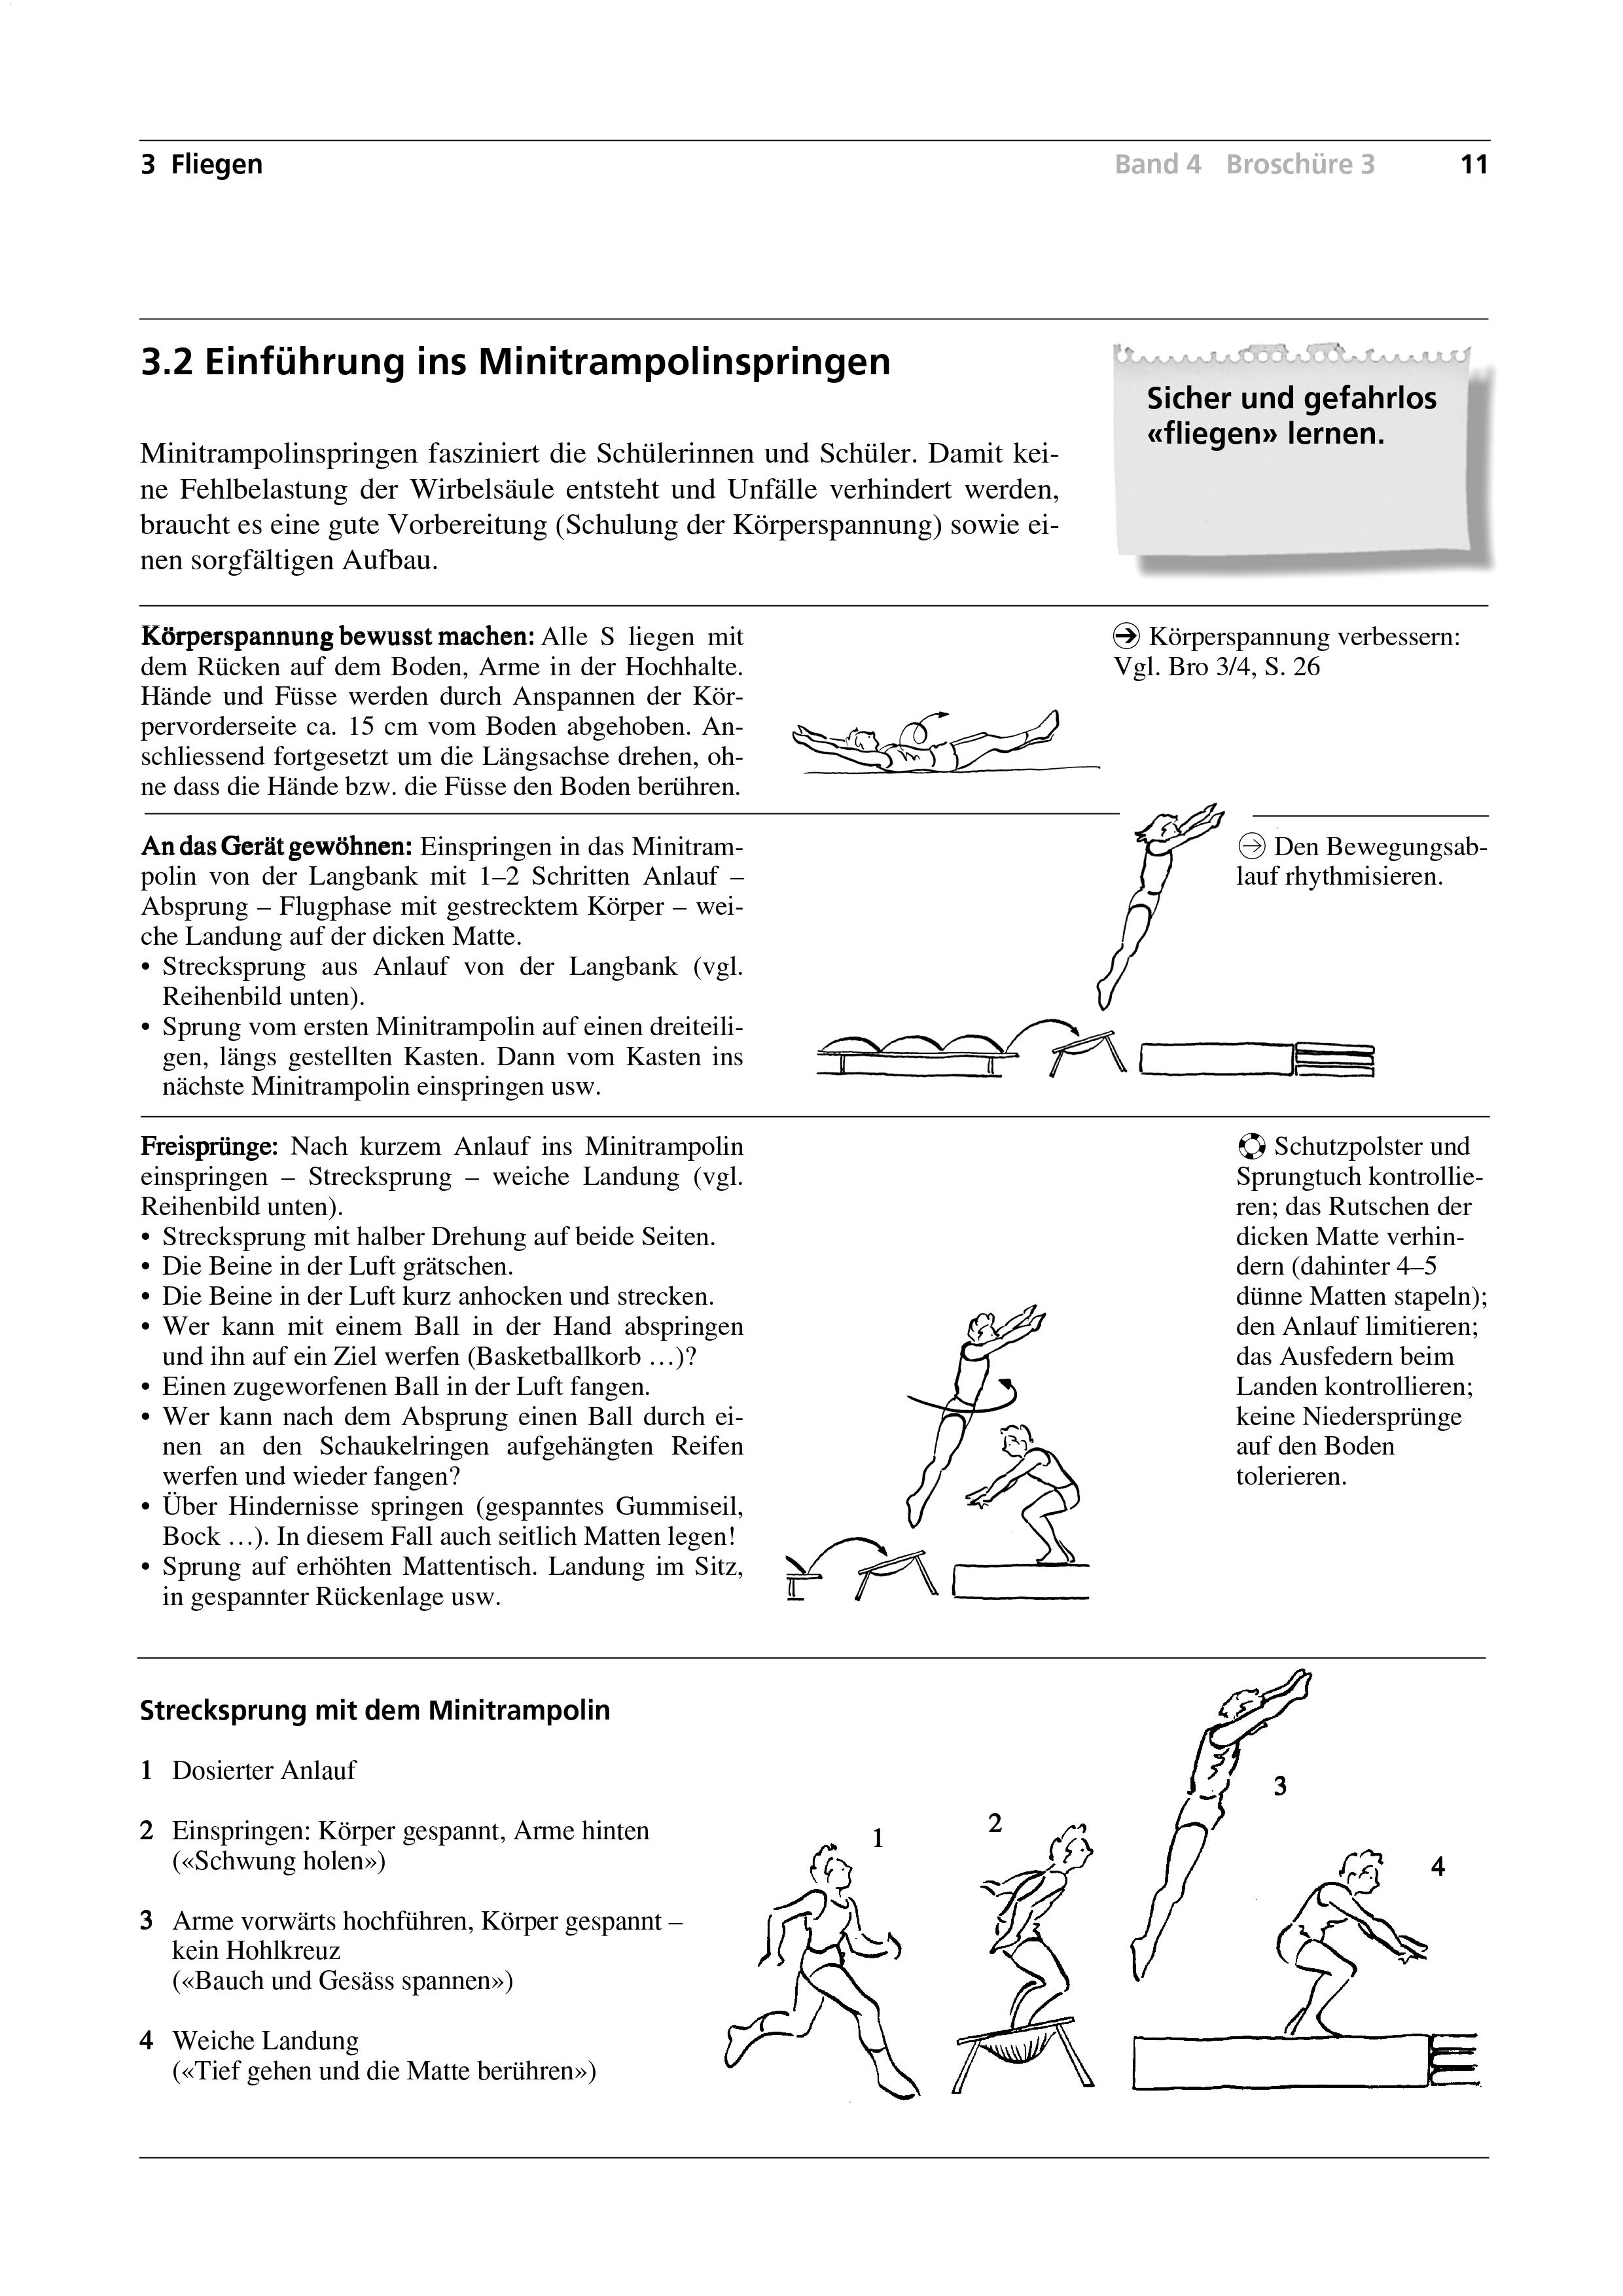 Preview image for LOM object Einführung ins Minitrampolinspringen